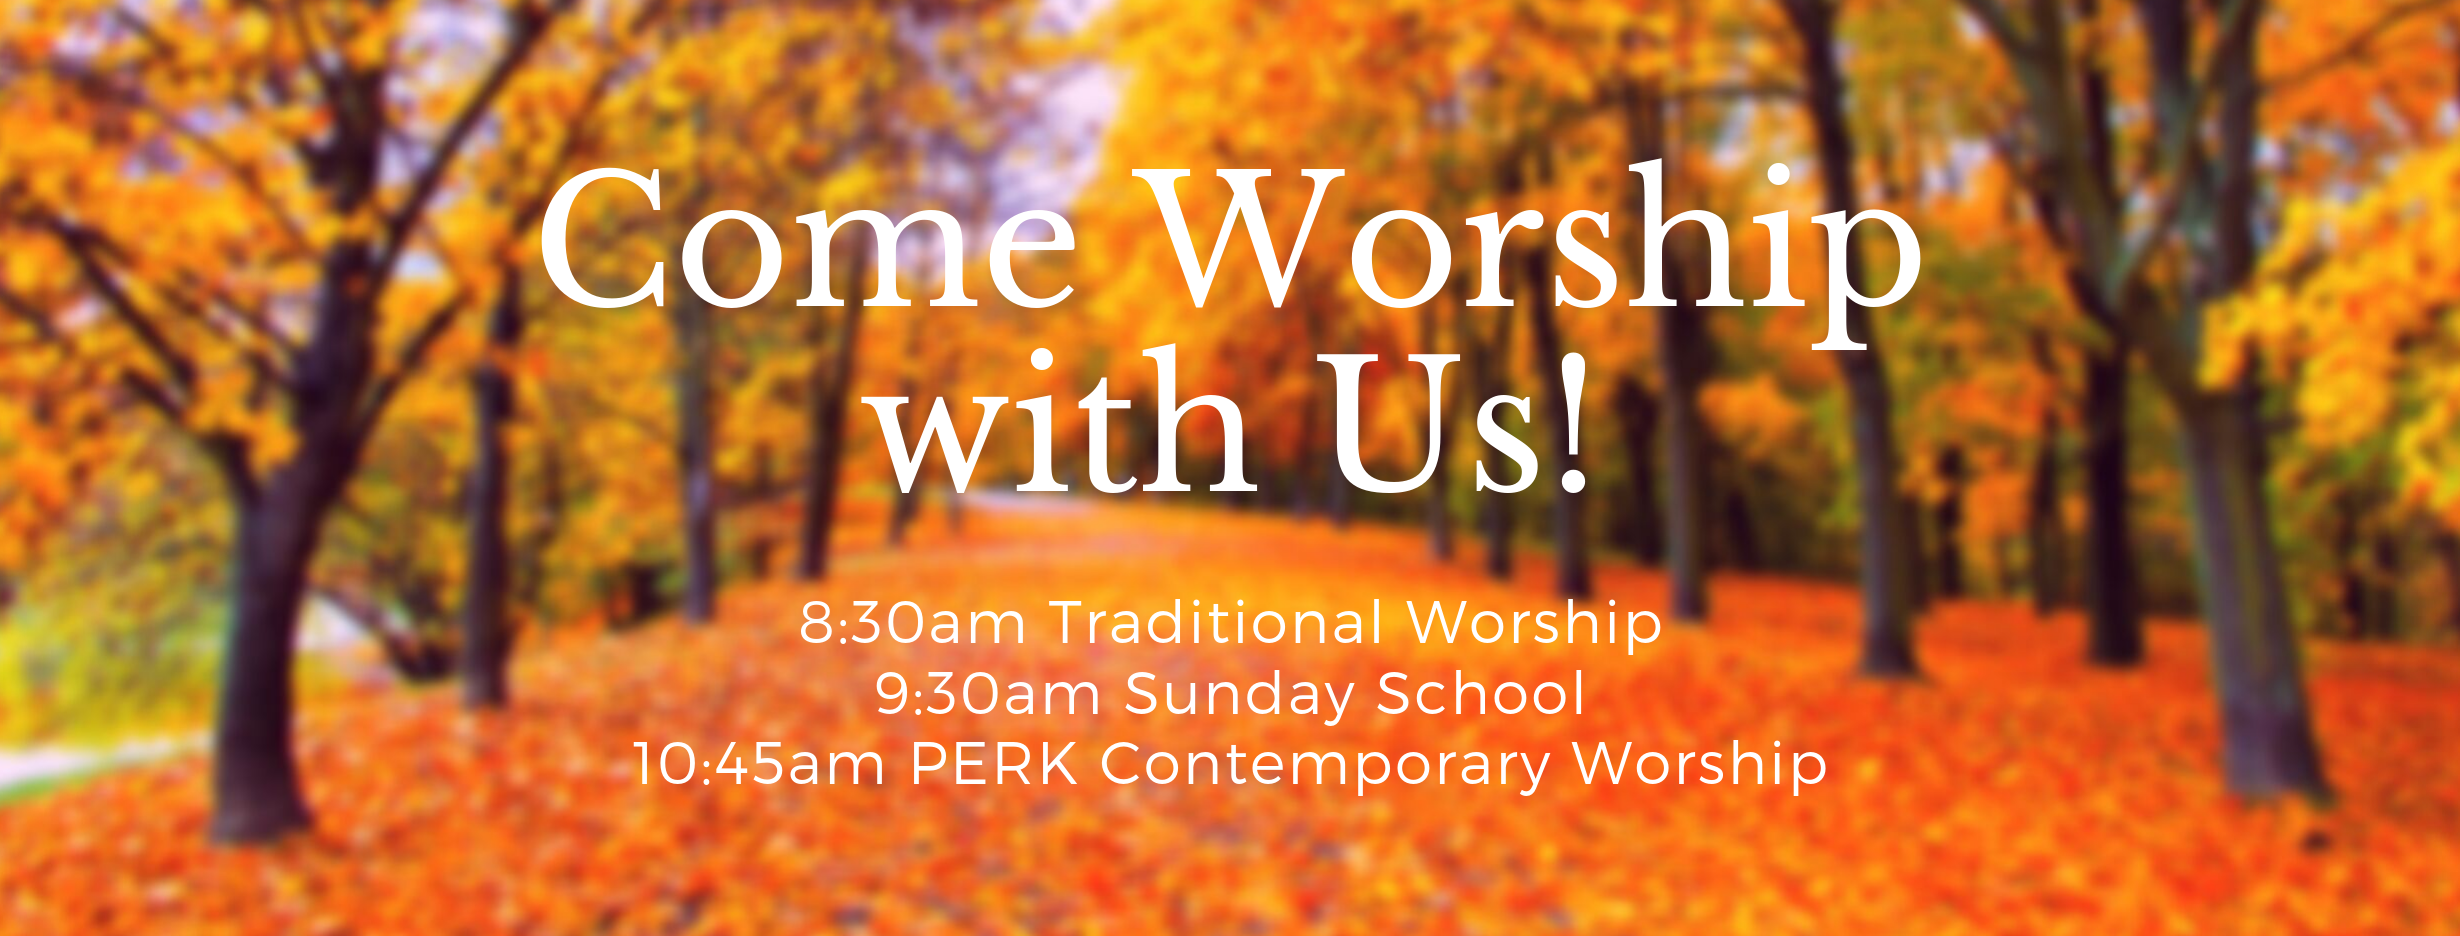 Worship with Us! (1)